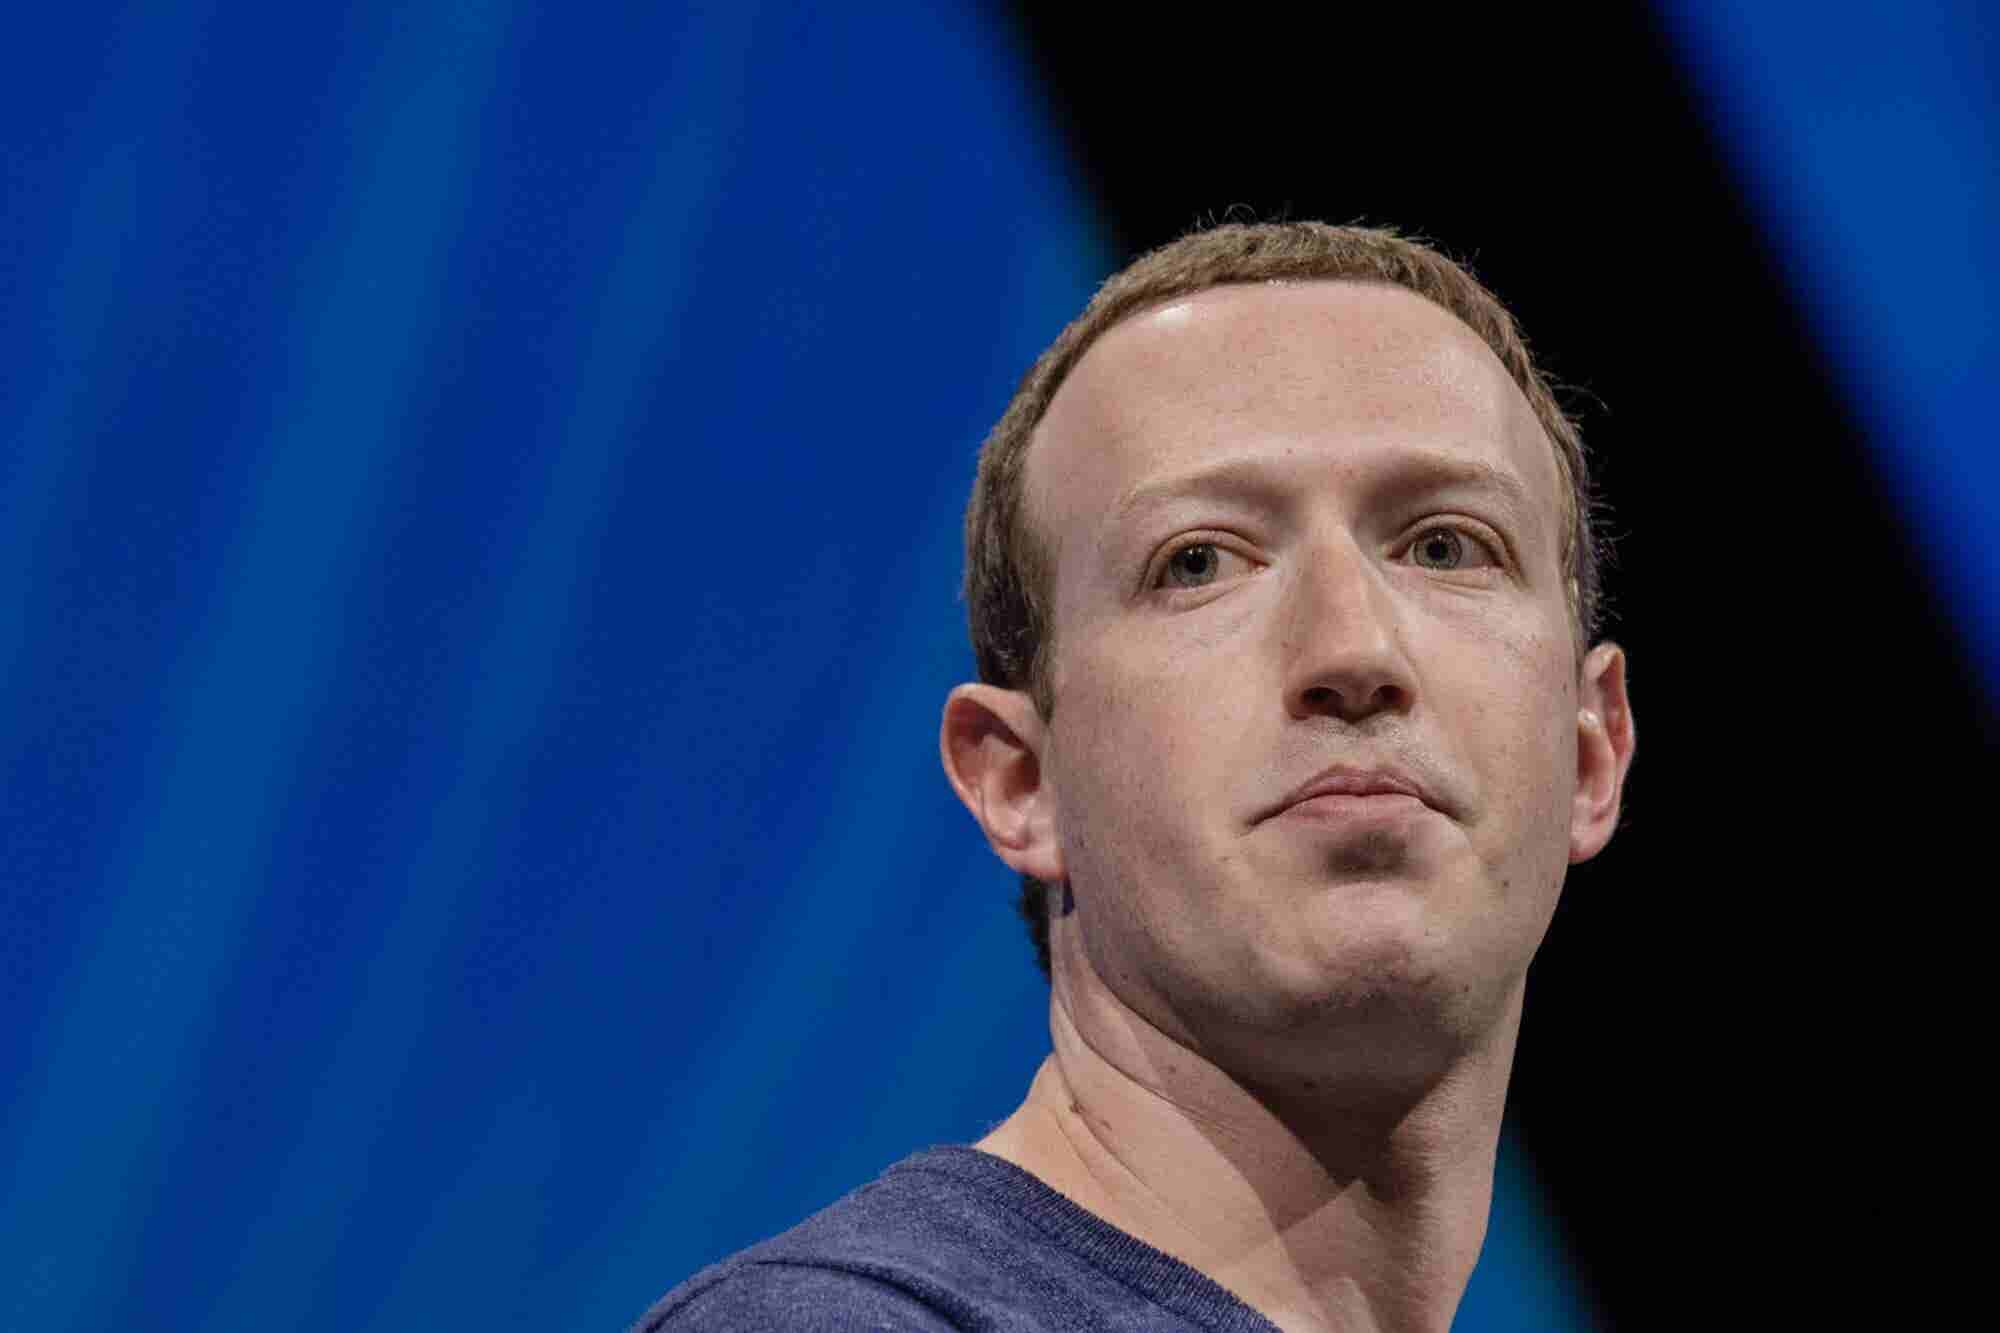 Mark Zuckerberg's Former Mentor: 'The People at Facebook Live in Their Own Bubble'